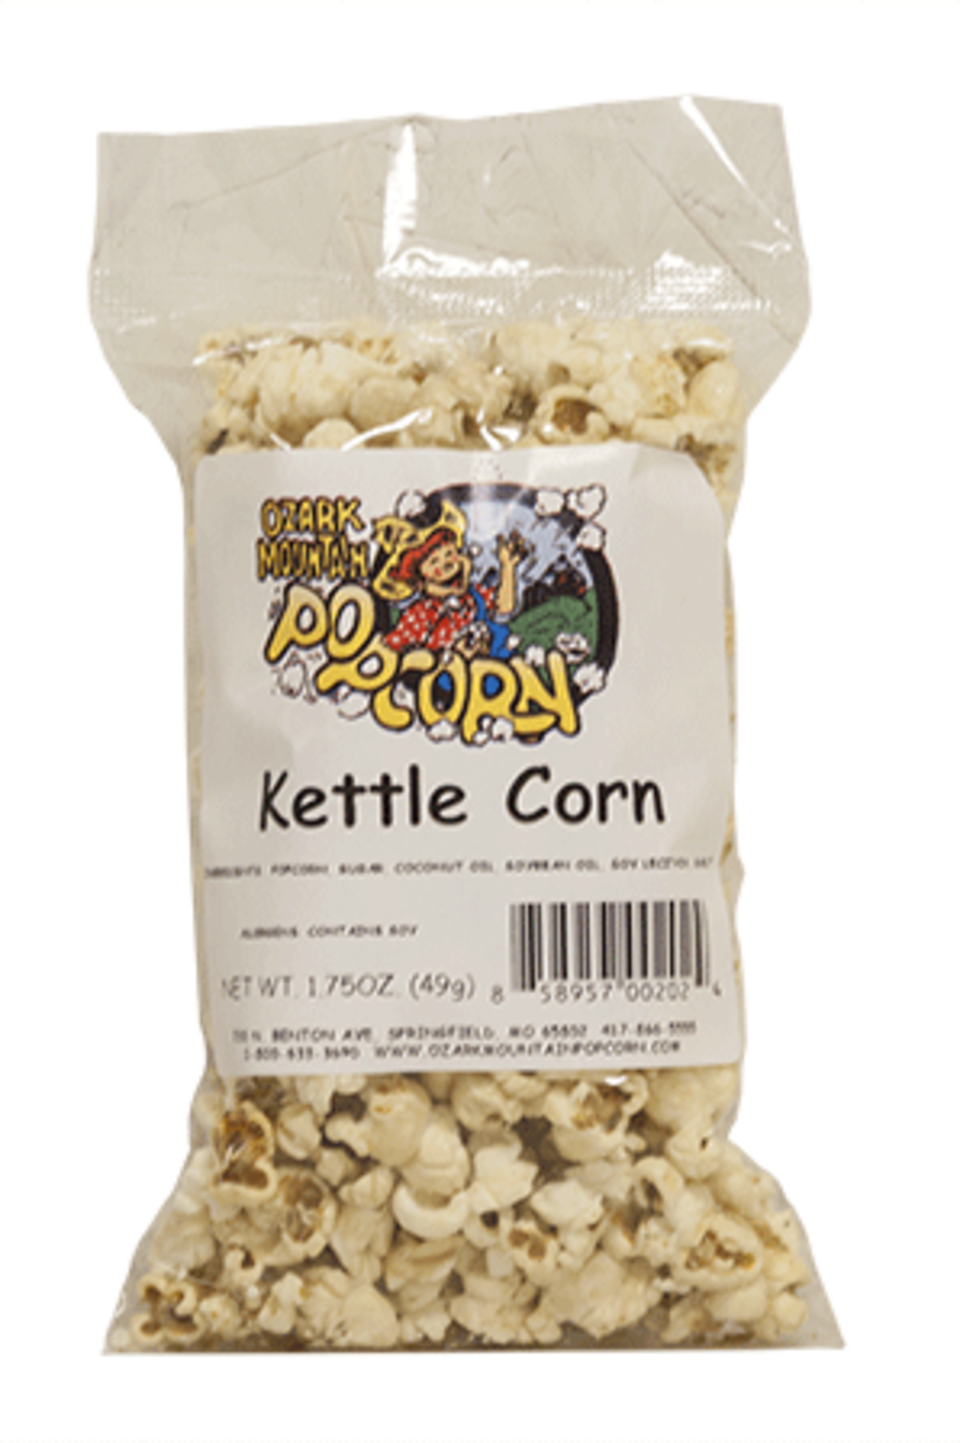 Kettle corn 3 cup20171118 21263 1illmuq